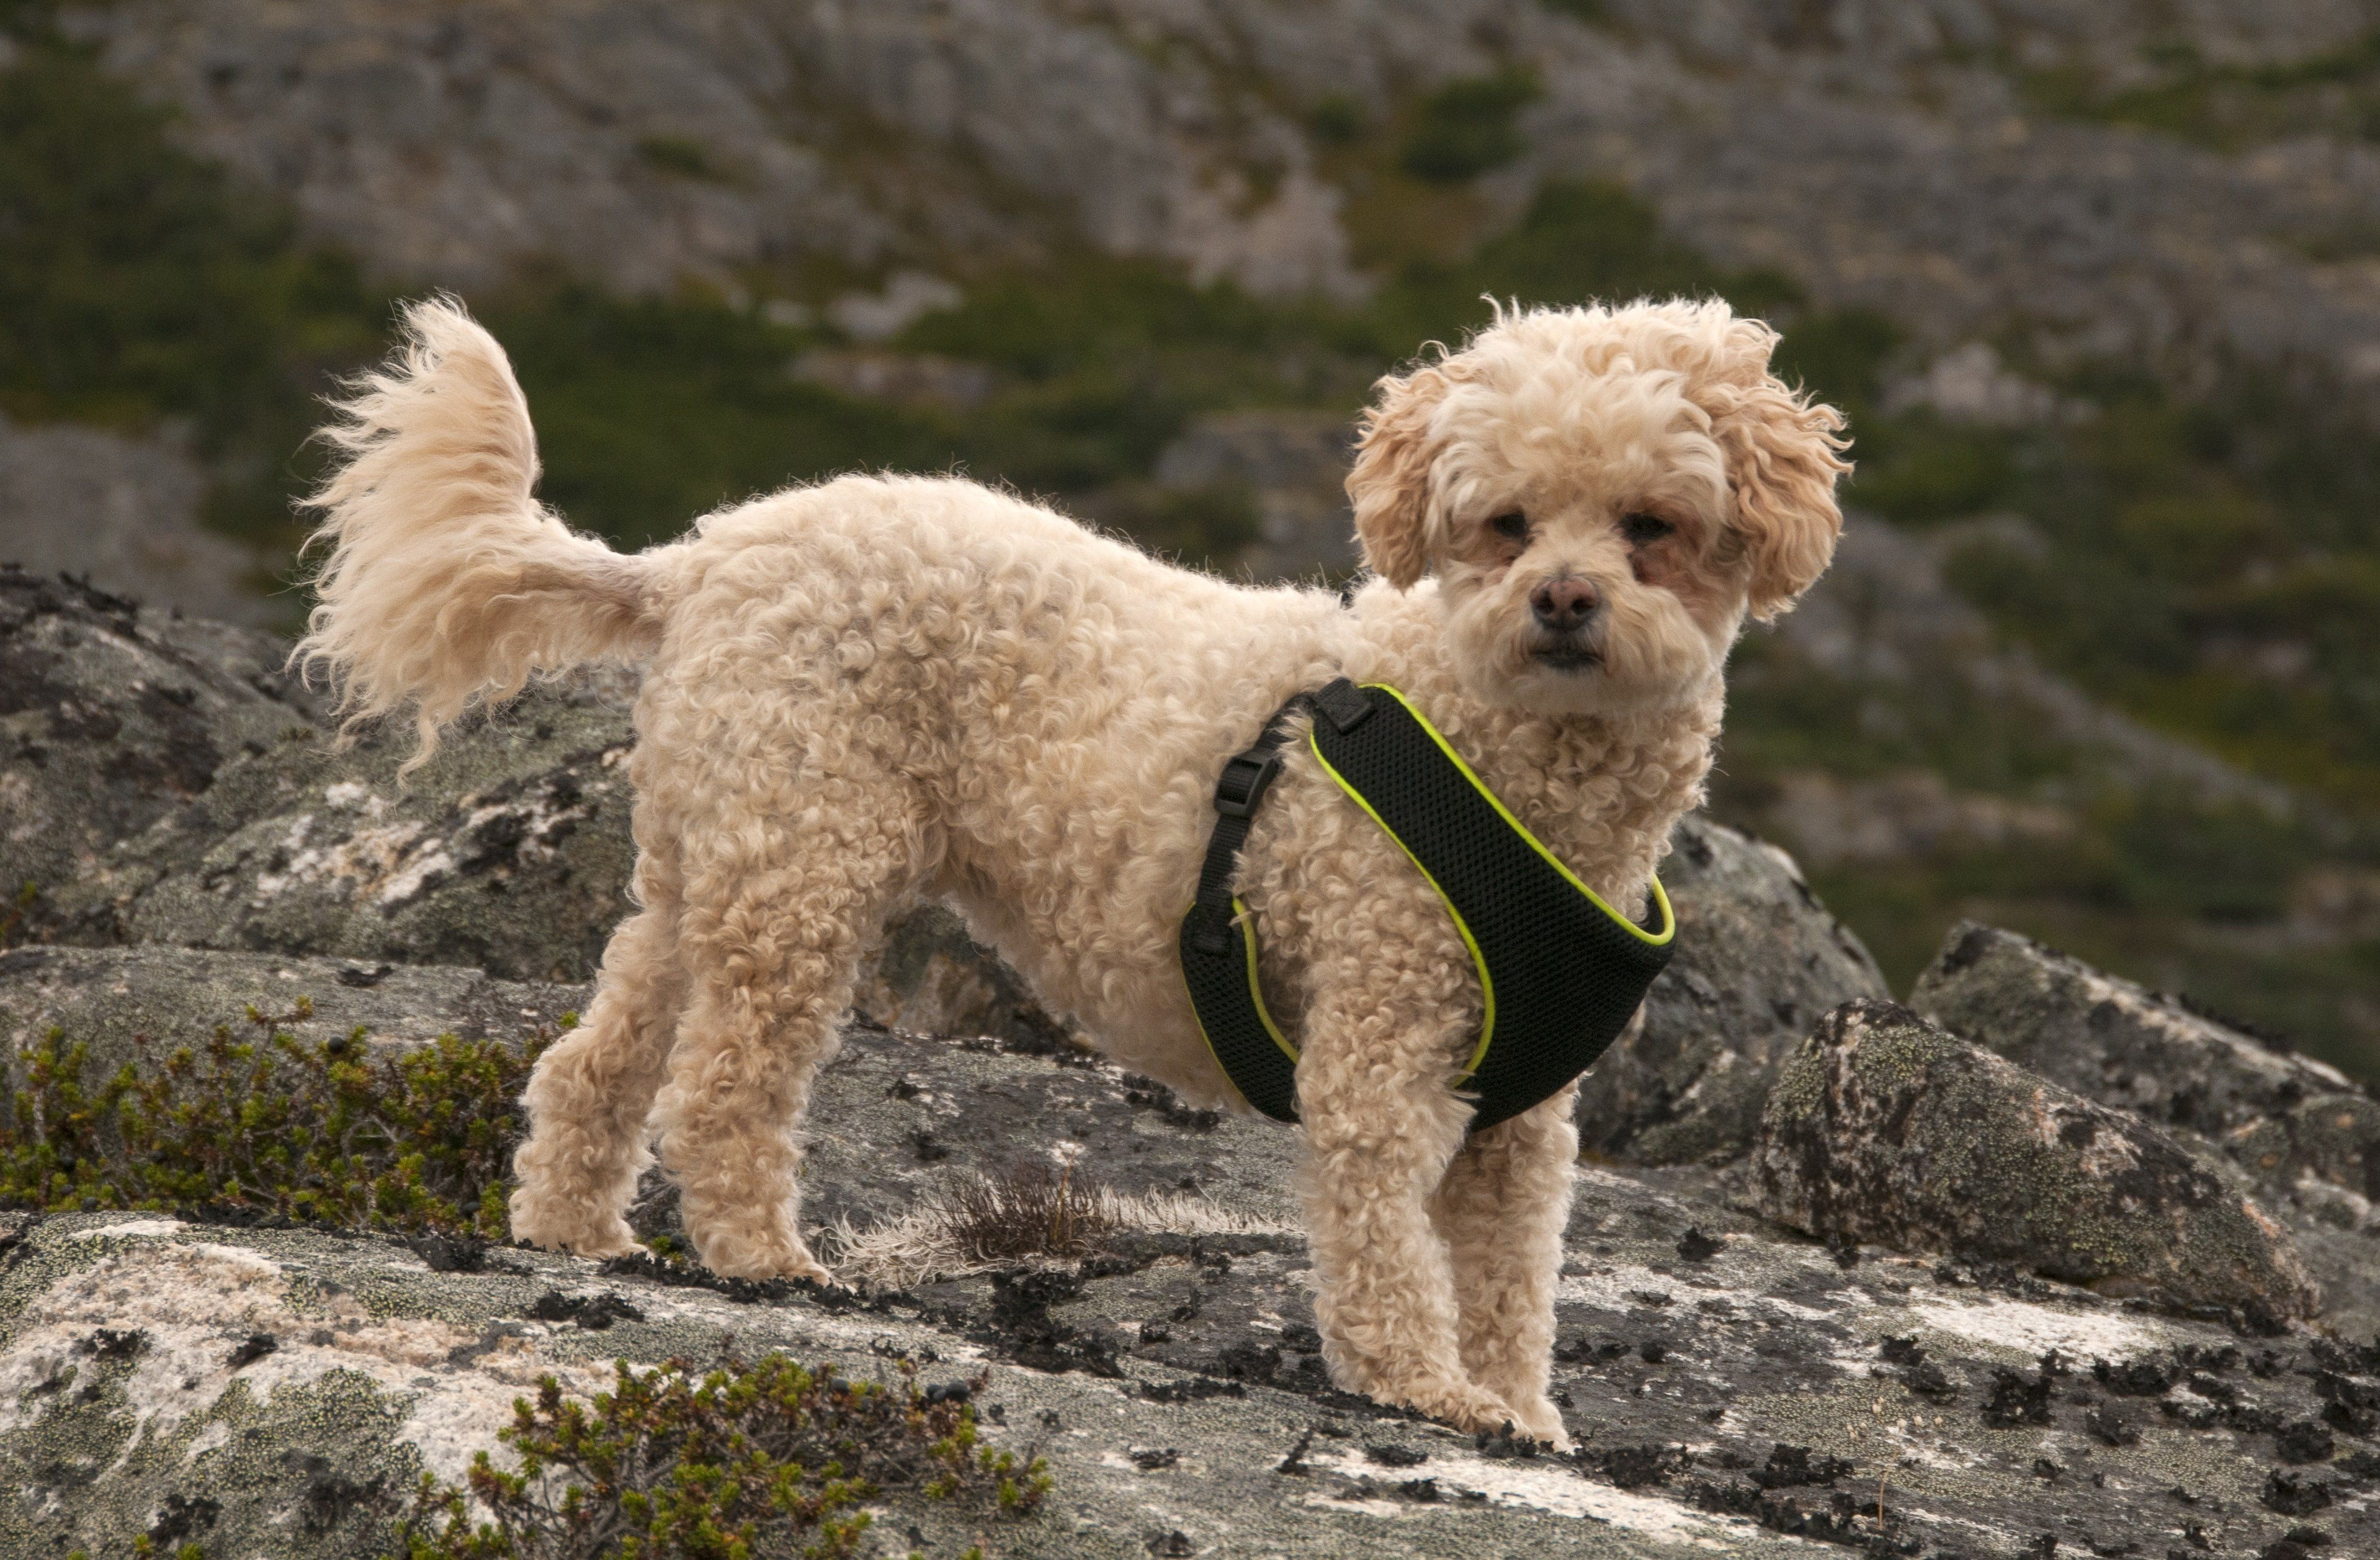 Poochon Mixed Dog Breed Pictures Characteristics Facts In 2020 Dog Breeds Pictures Dog Breeds Cockapoo Dog